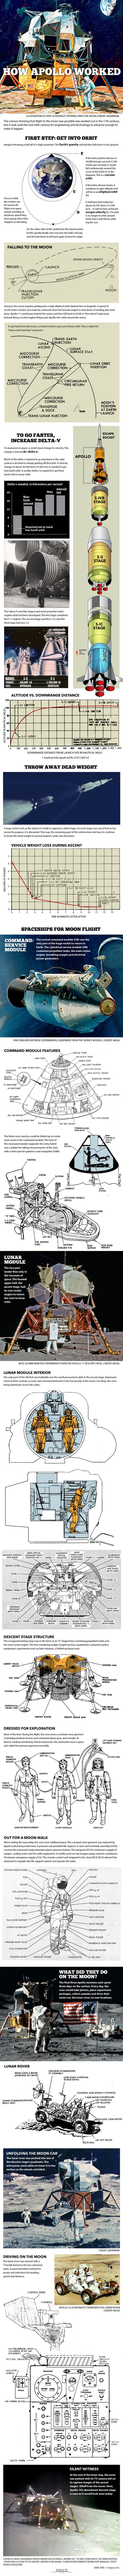 Diagrams and NASA artwork show how Apollo astronauts flew to the moon. http://m.space.com/26572-how-it-worked-the-apollo-spacecraft-infographic.html?cmpid=514648